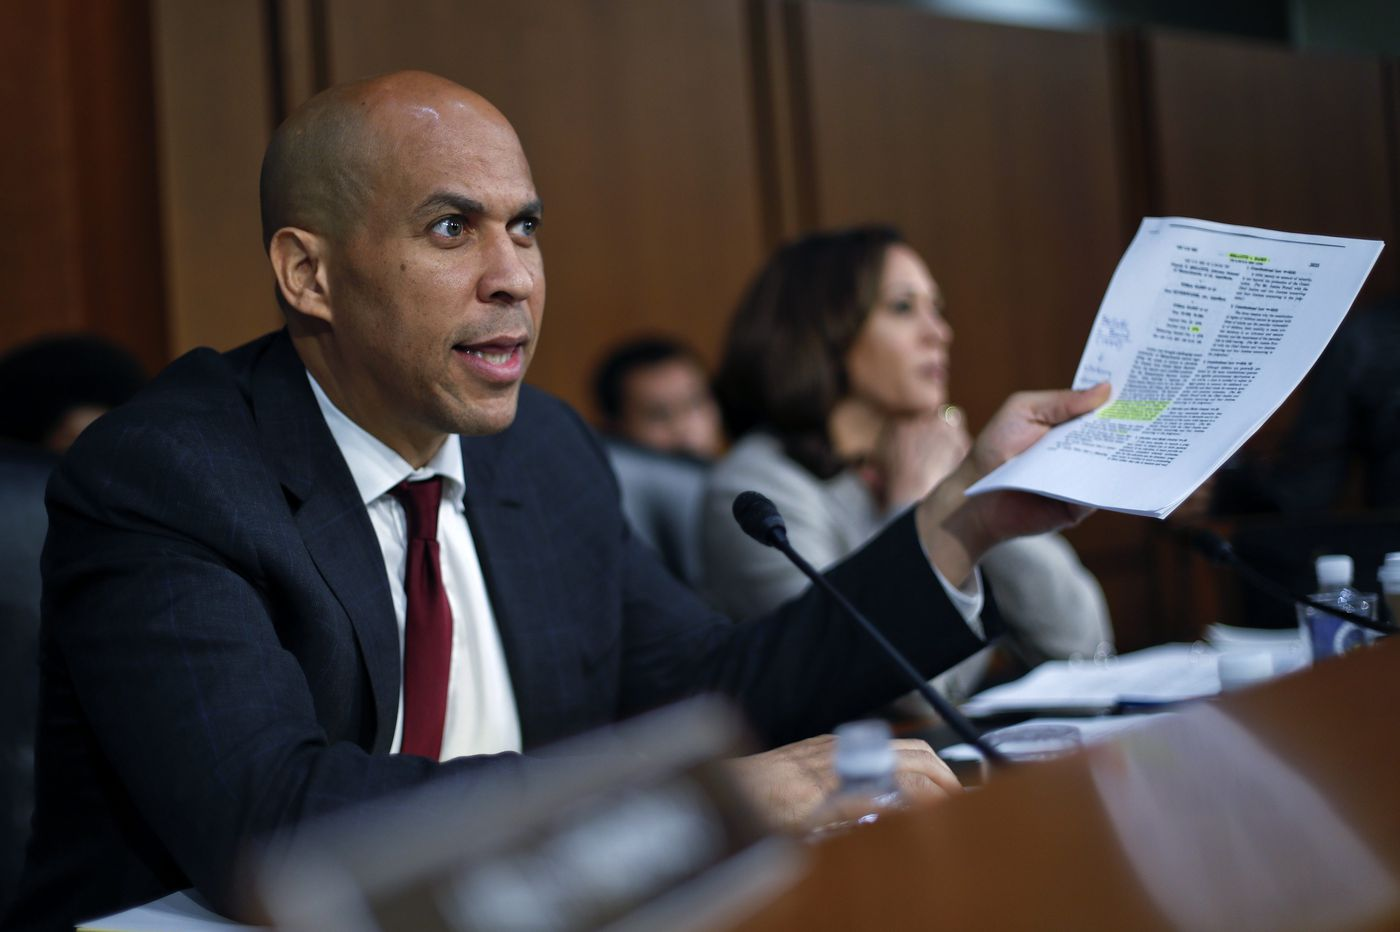 Amid Kavanaugh controversy, conservatives attack Cory Booker's 1992 admission to 'groping' a high school friend after a kiss